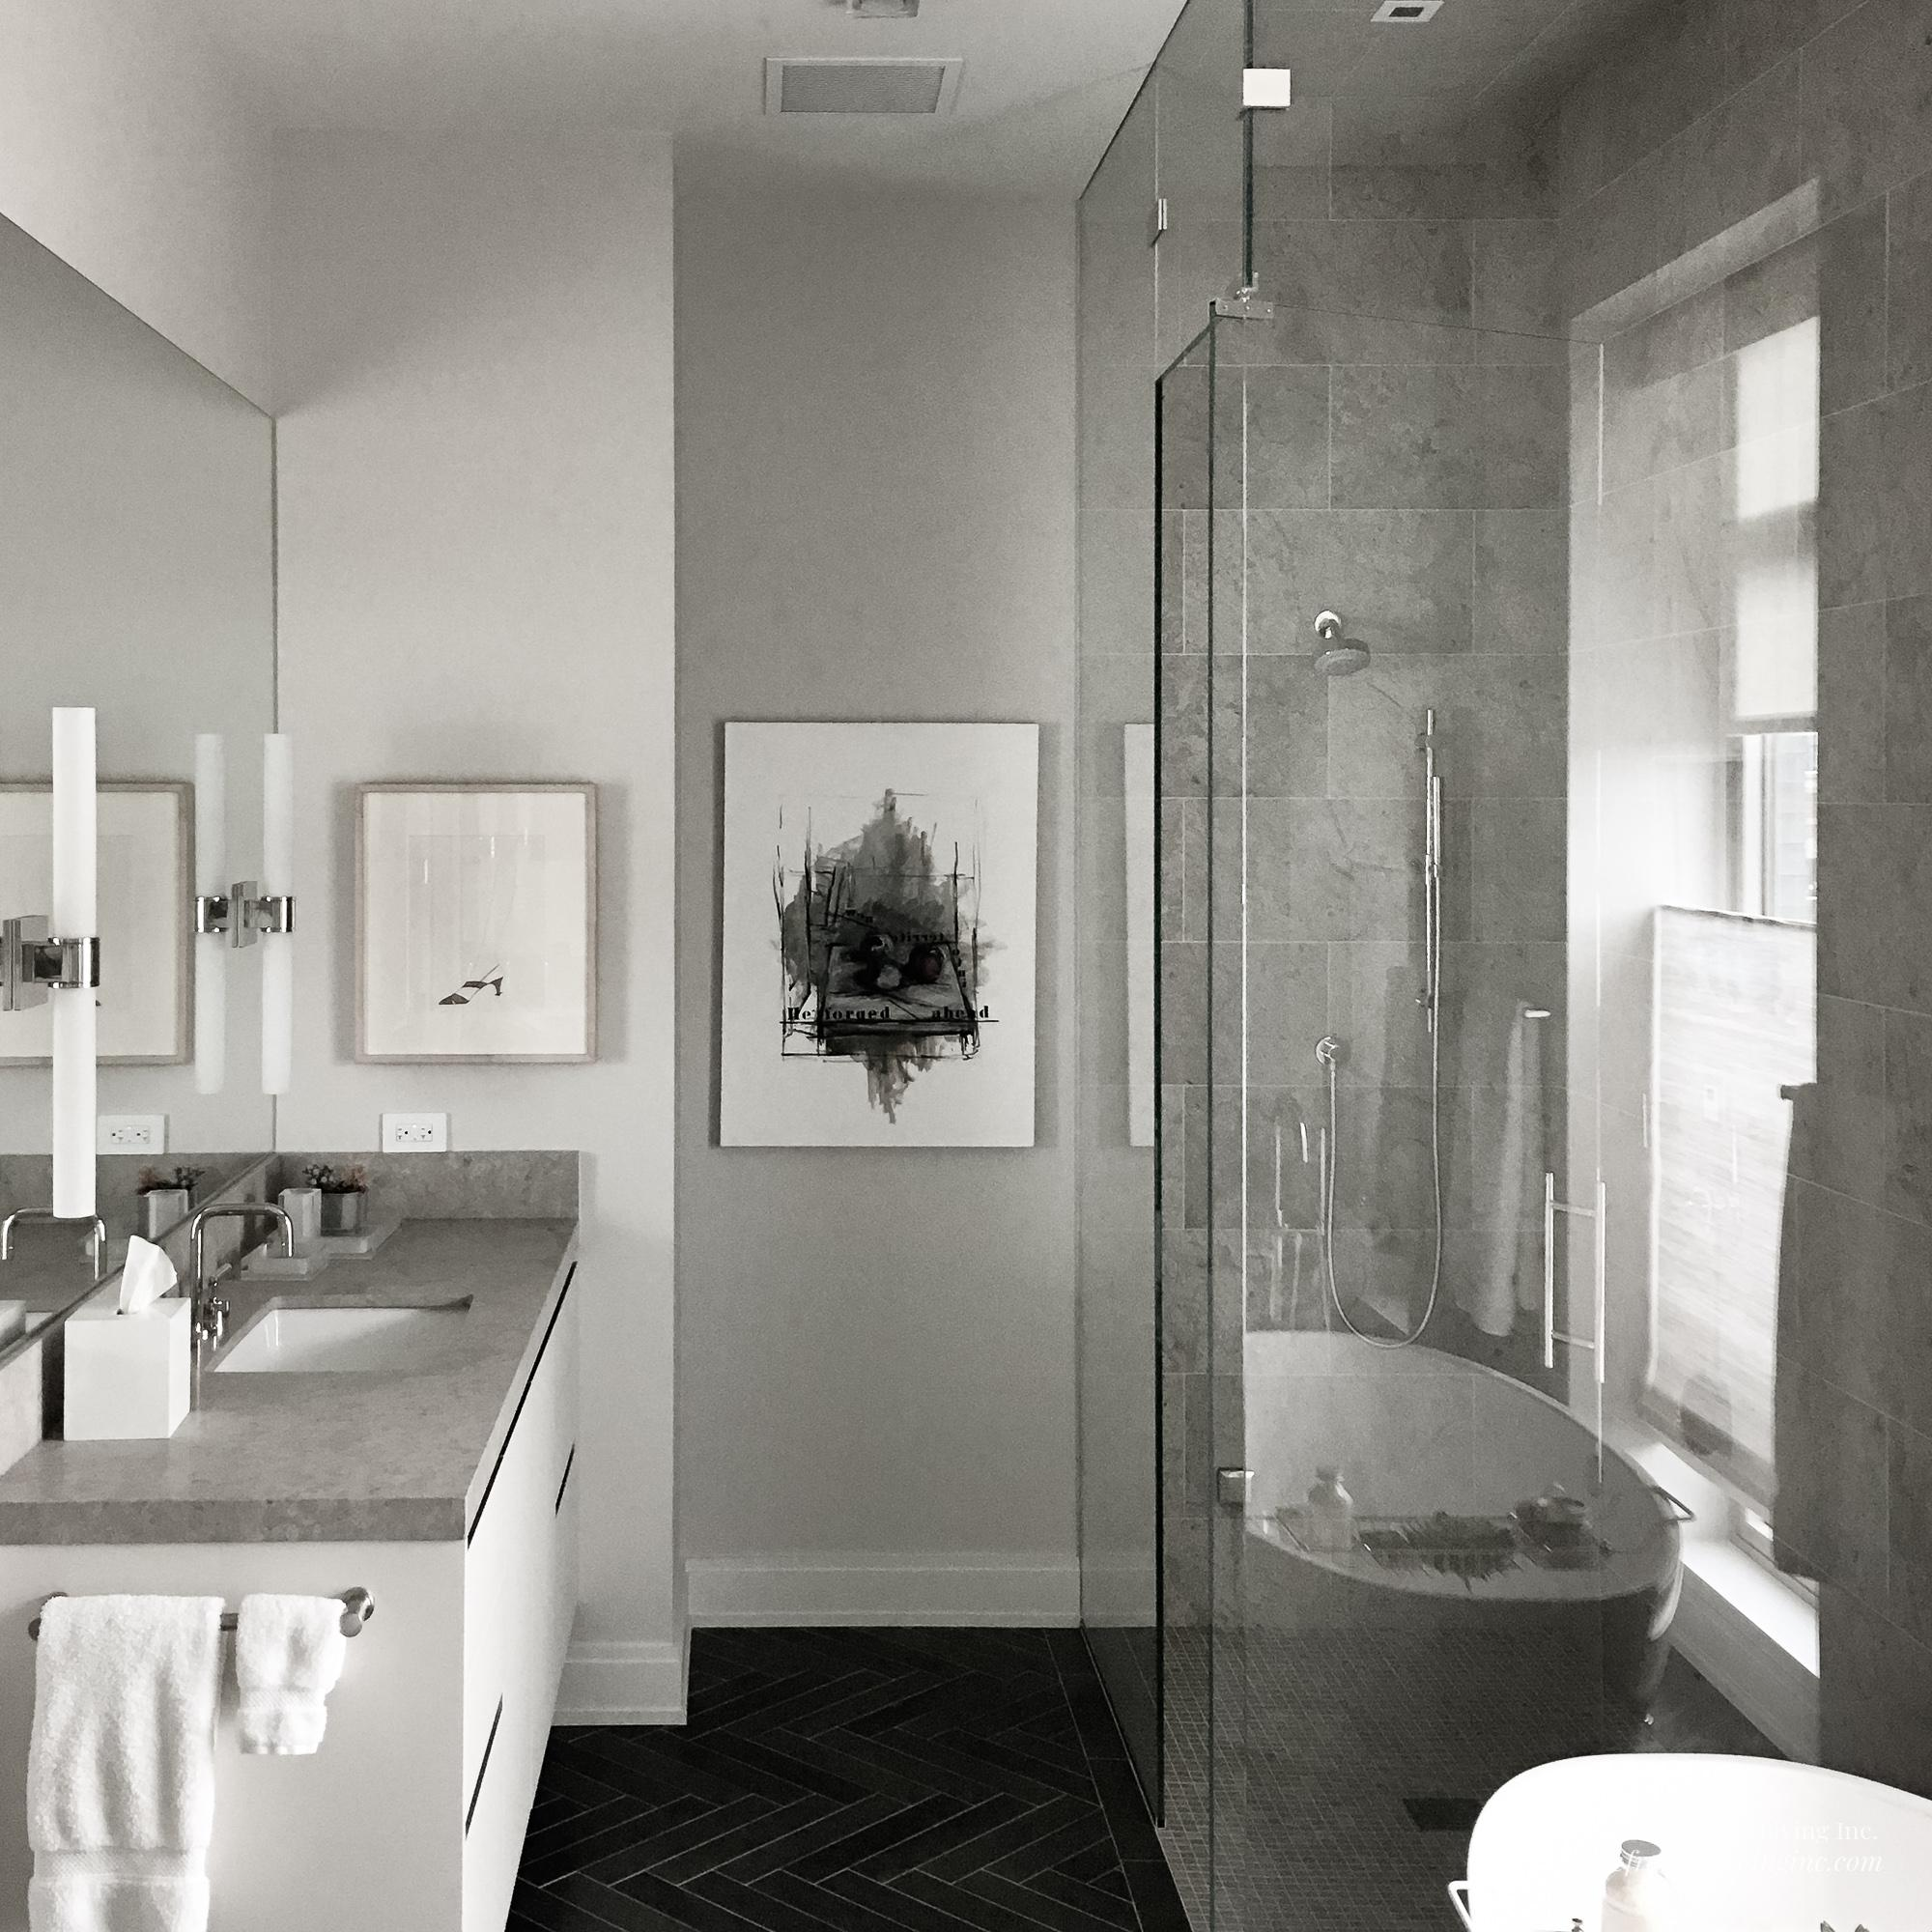 White bathroom with gray counters, walk-in shower and tub on the right, single sink